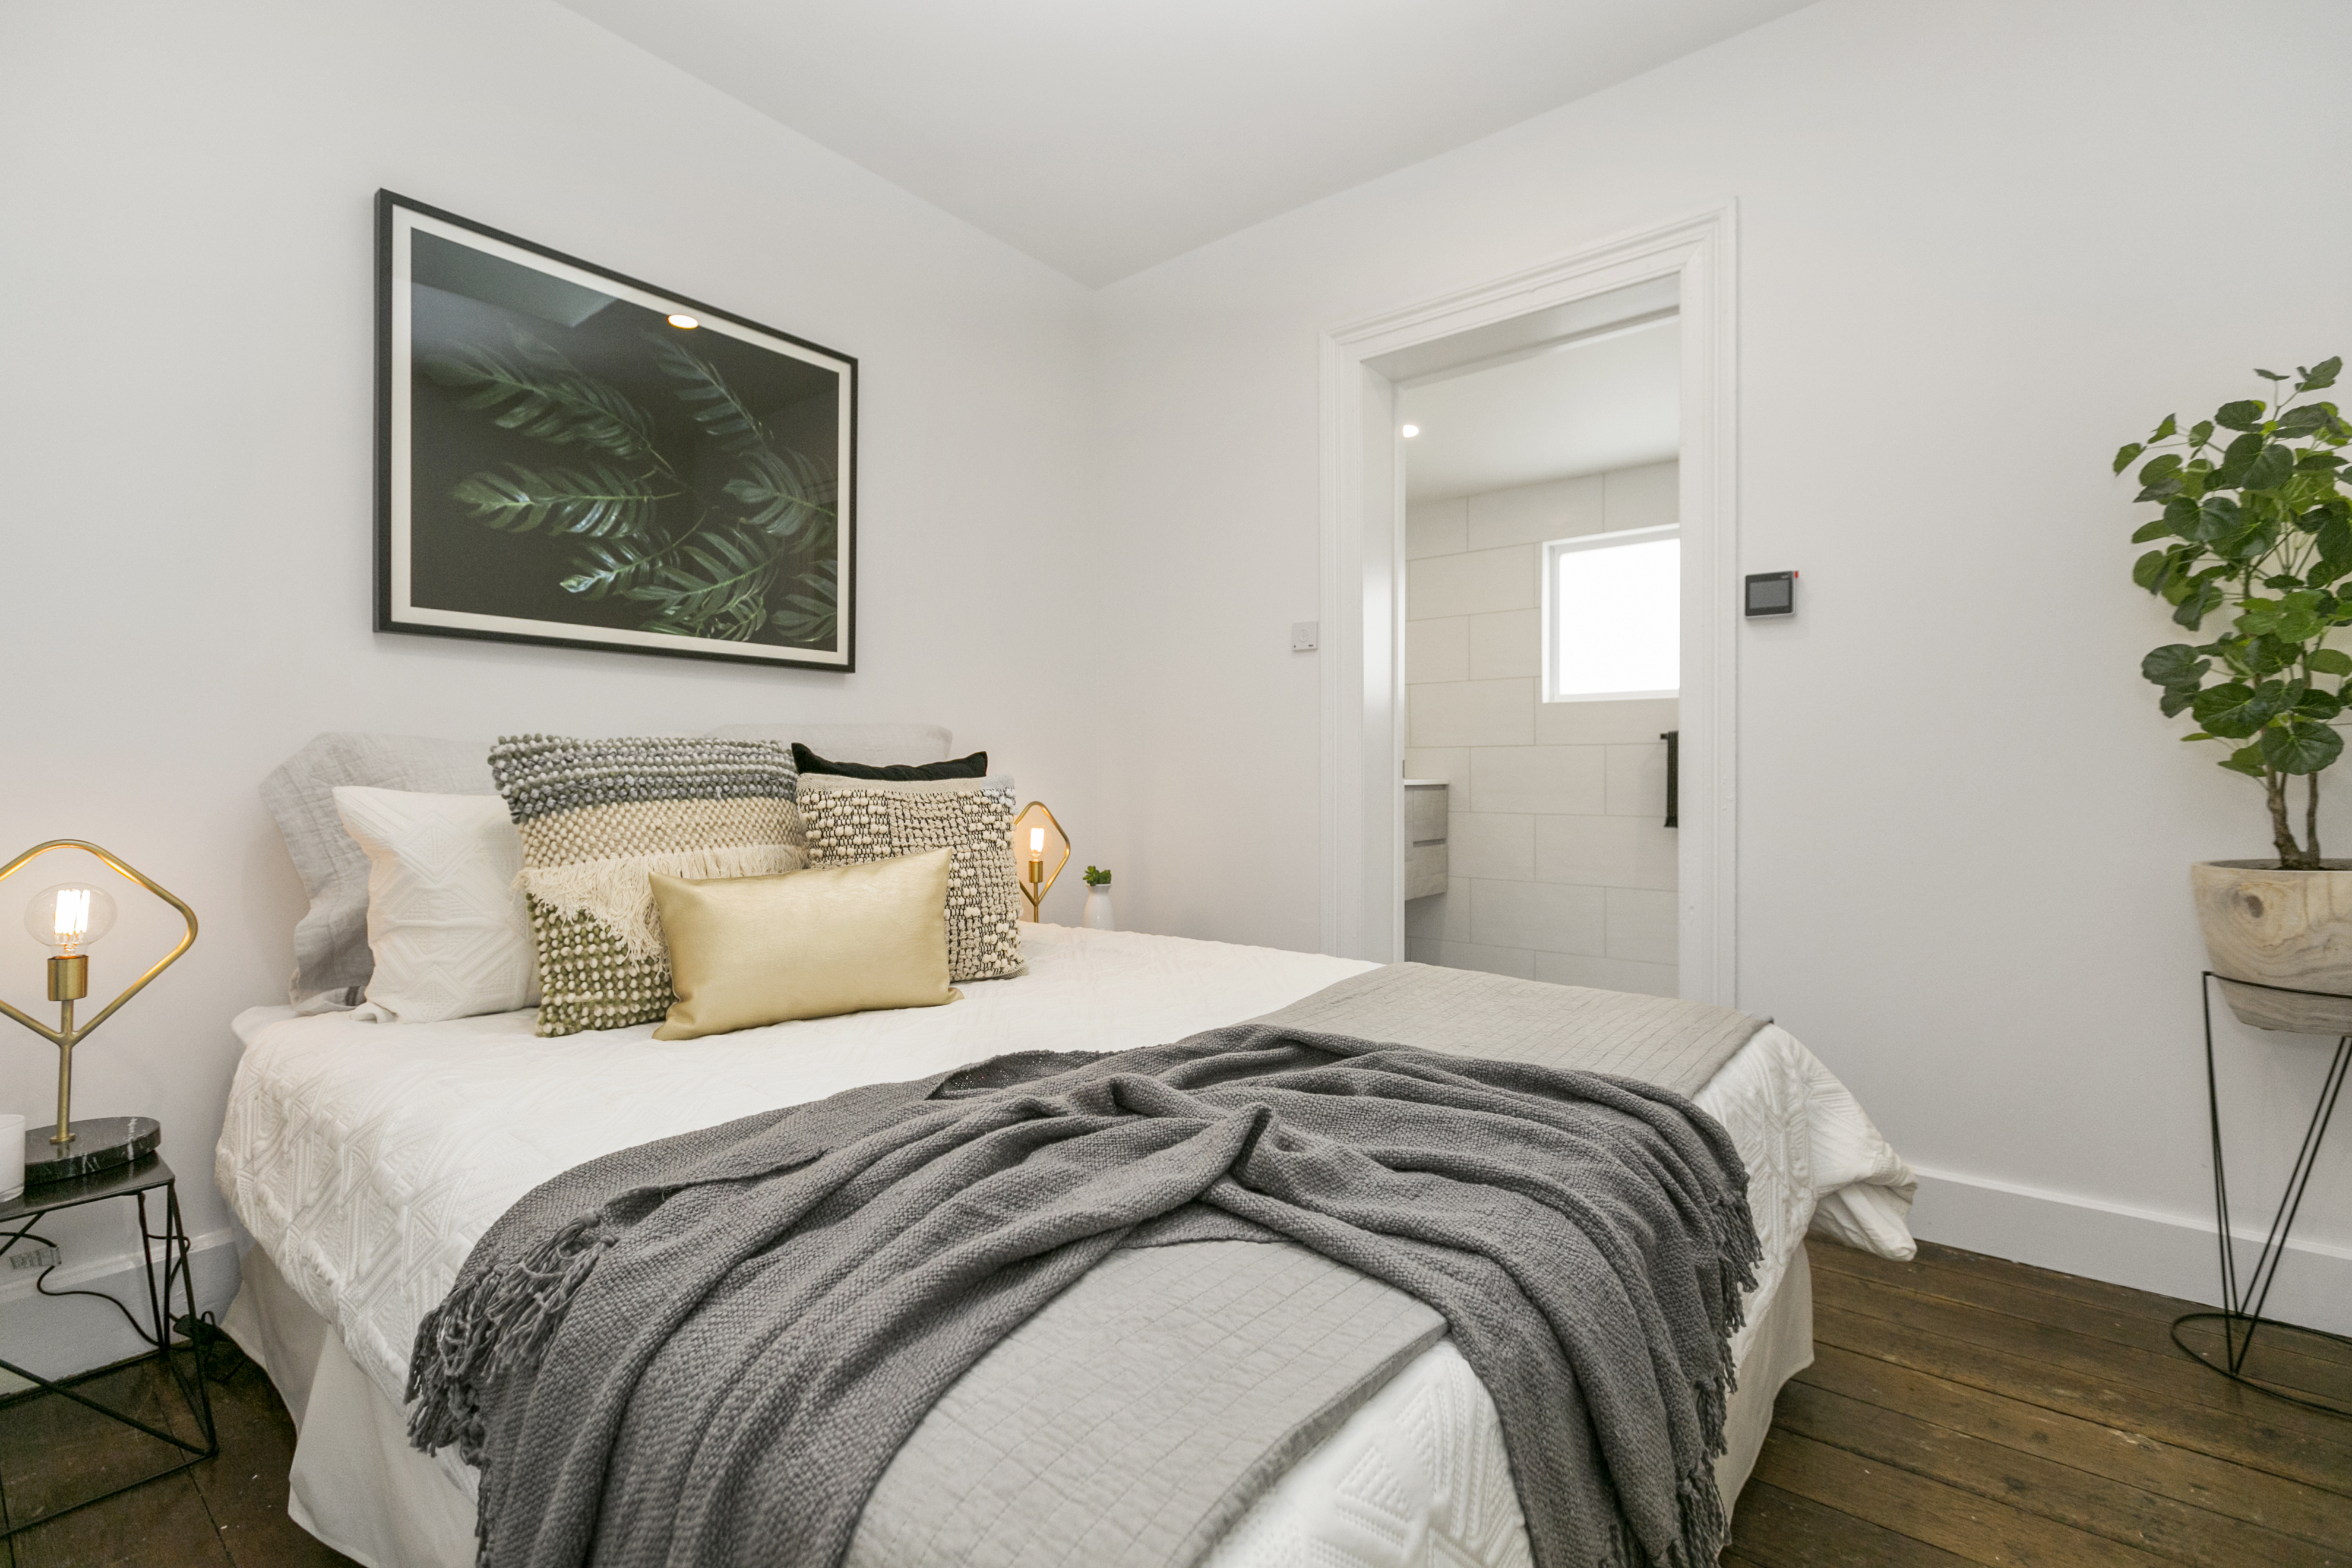 Master bedroom with fully renovated ensuite